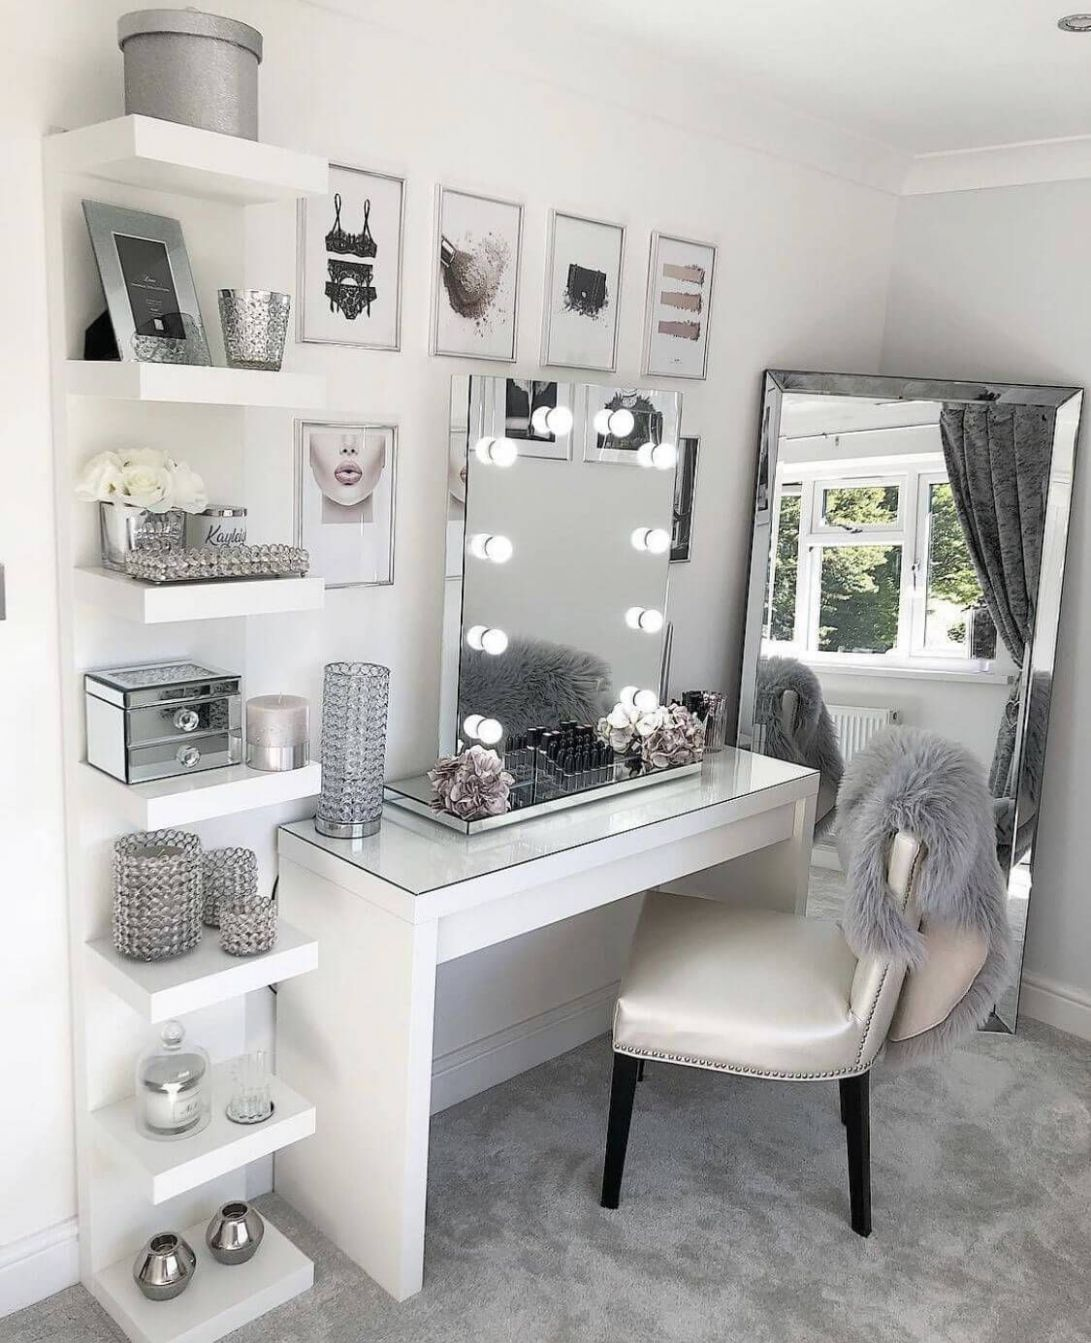 11+ Perfect Makeup Room Ideas for Makeup Lovers | Room decor ...